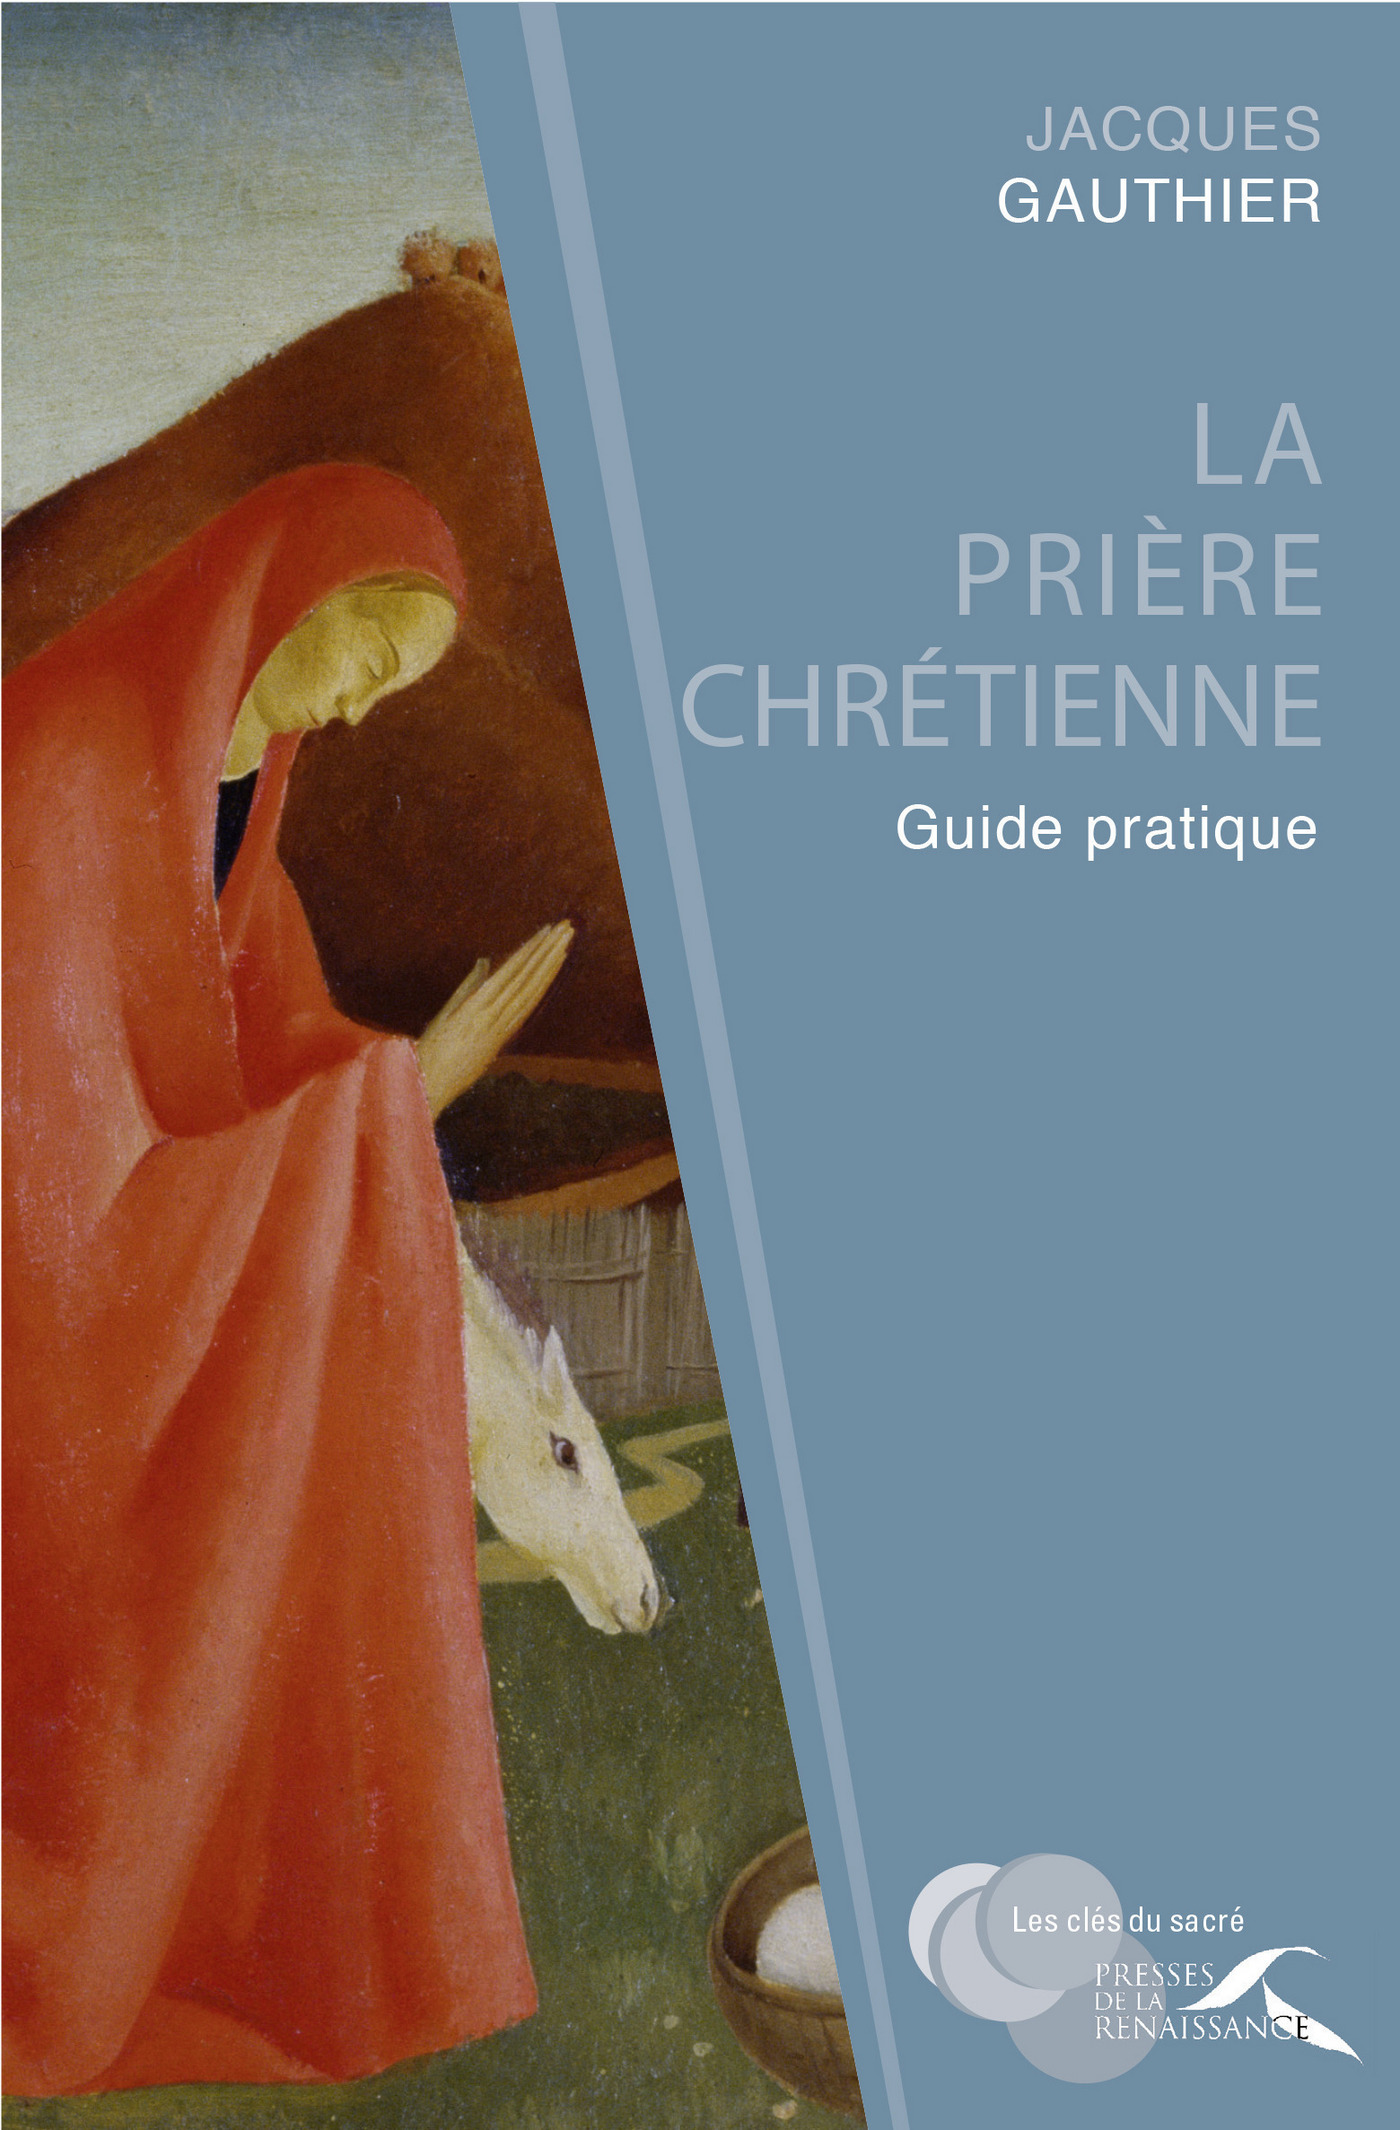 La pri?re chr?tienne : guide pratique